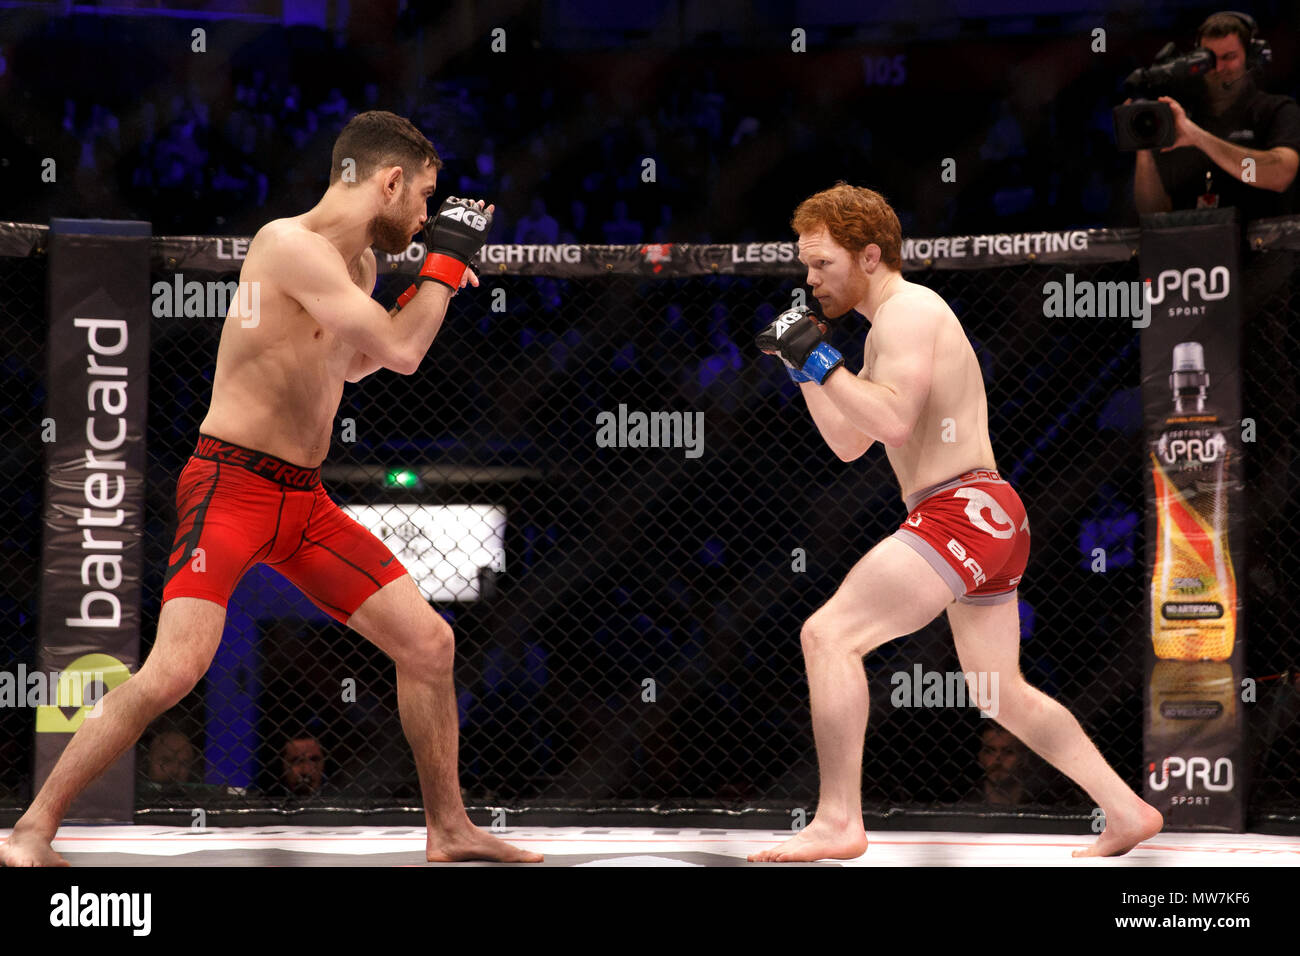 Aaron Aby (left) versus Connor Hignett (right) in a catchweight contest at ACB 54 in Manchester, UK. Aby won after three rounds by split decision. Absolute Championship Berkut, Mixed Martial Arts, MMA. - Stock Image